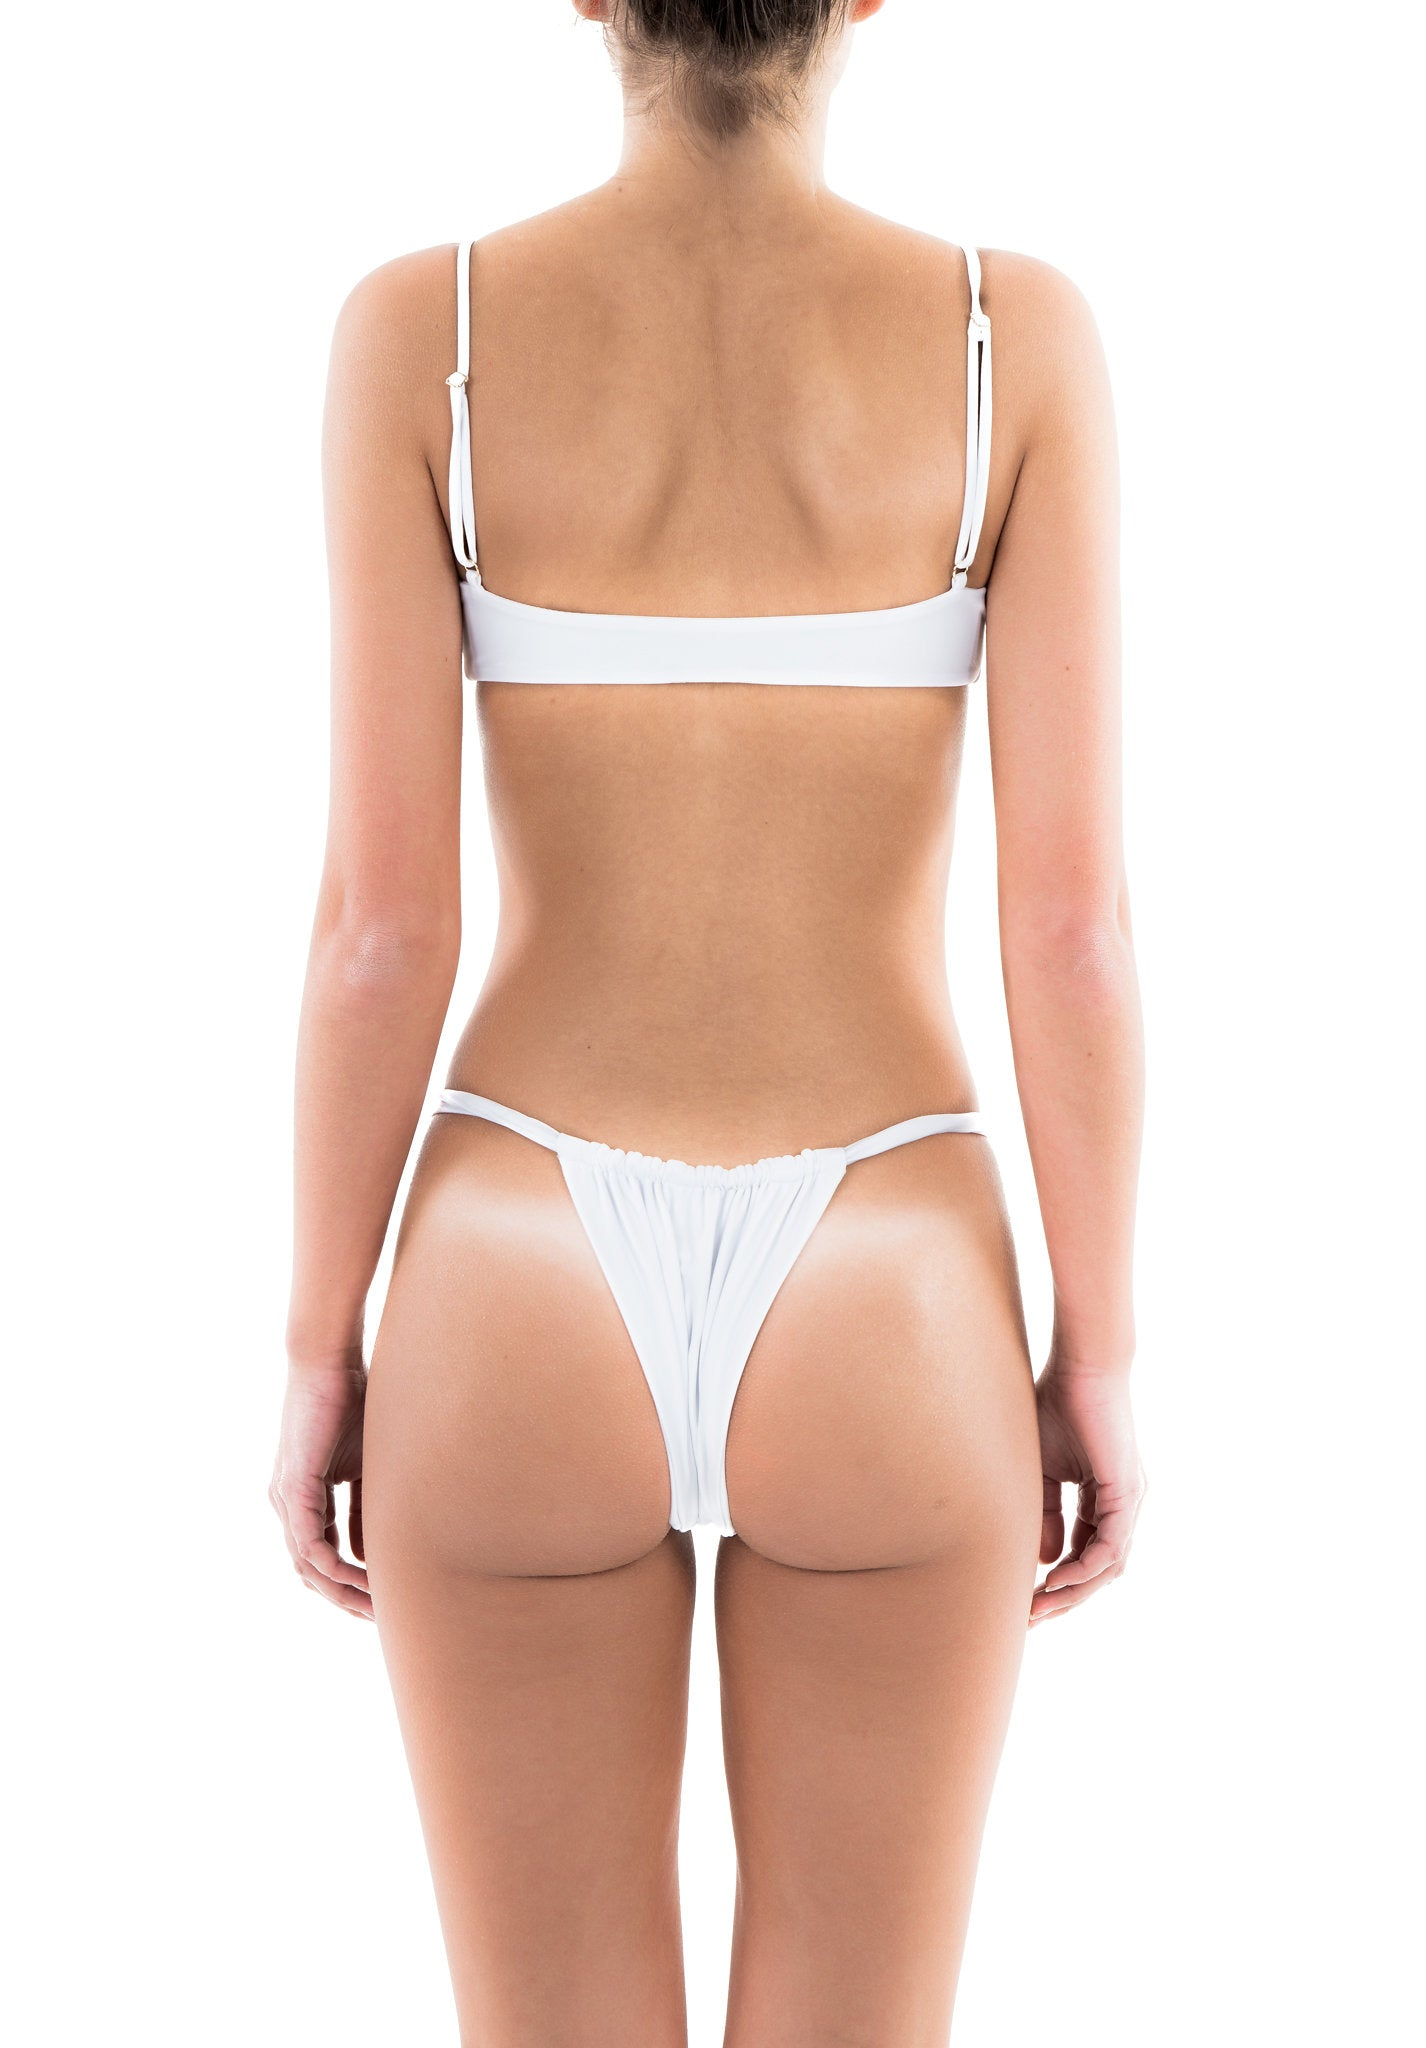 AMORE bottoms - pure white